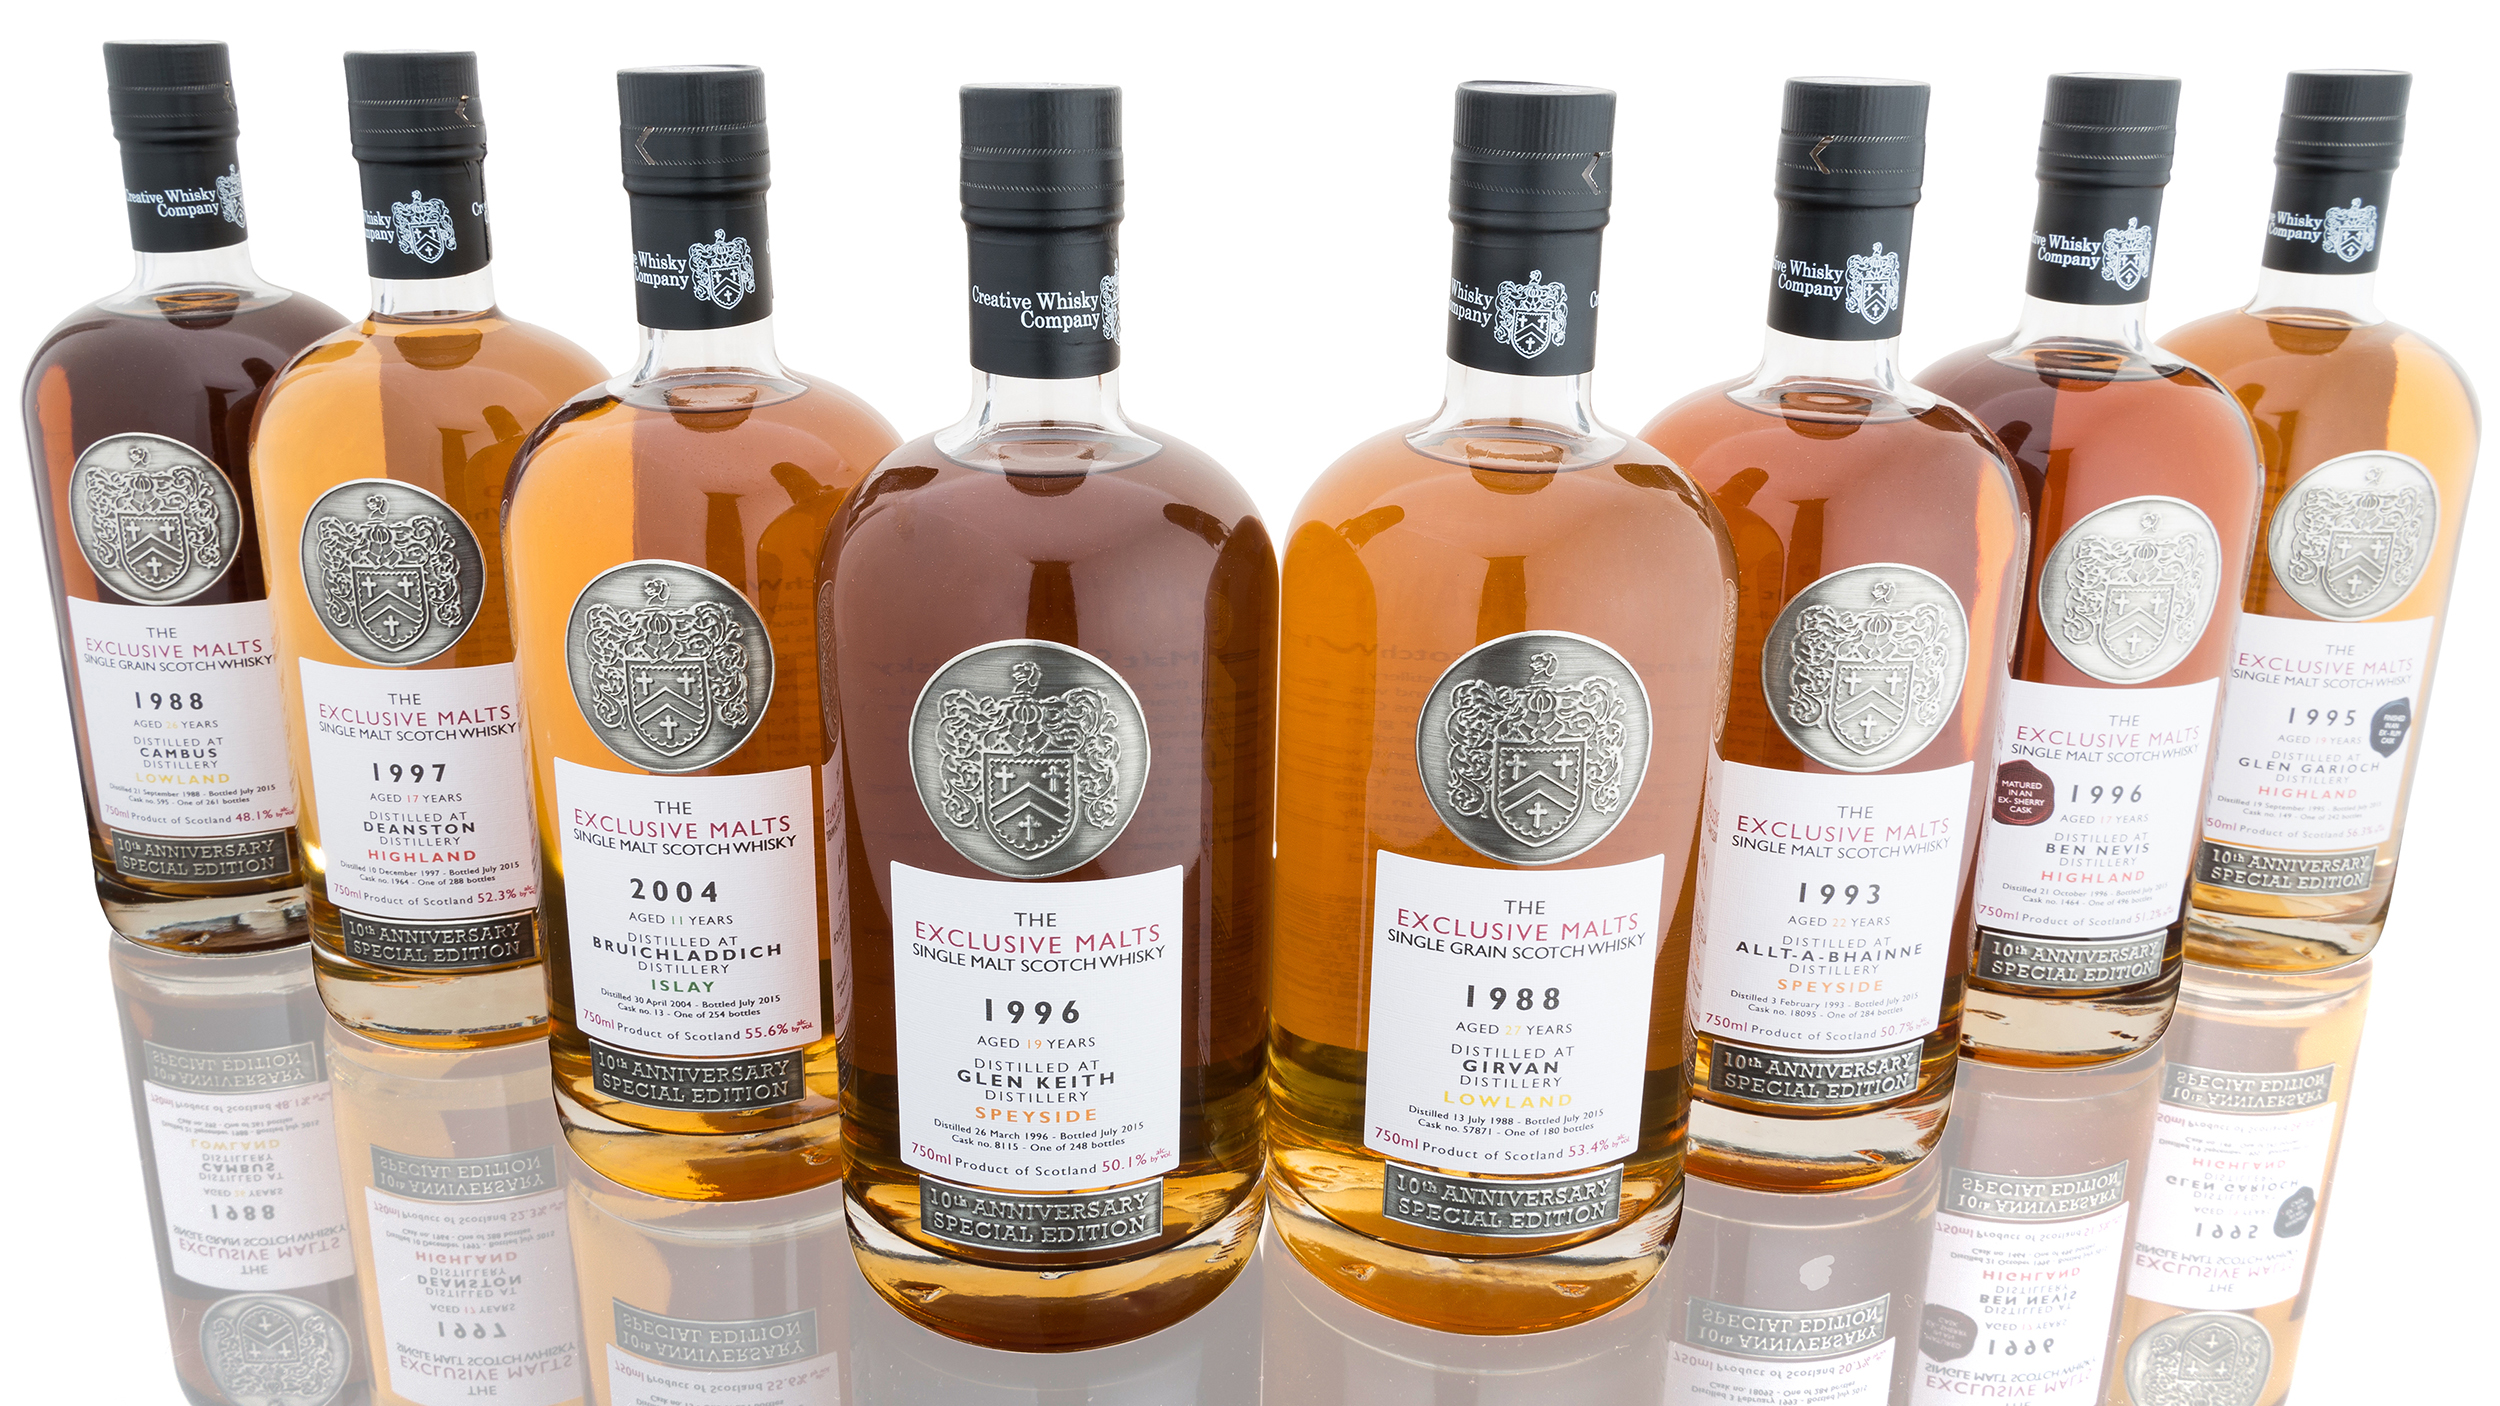 The Exclusive Malts Ben Nevis 1996 17 Years Old